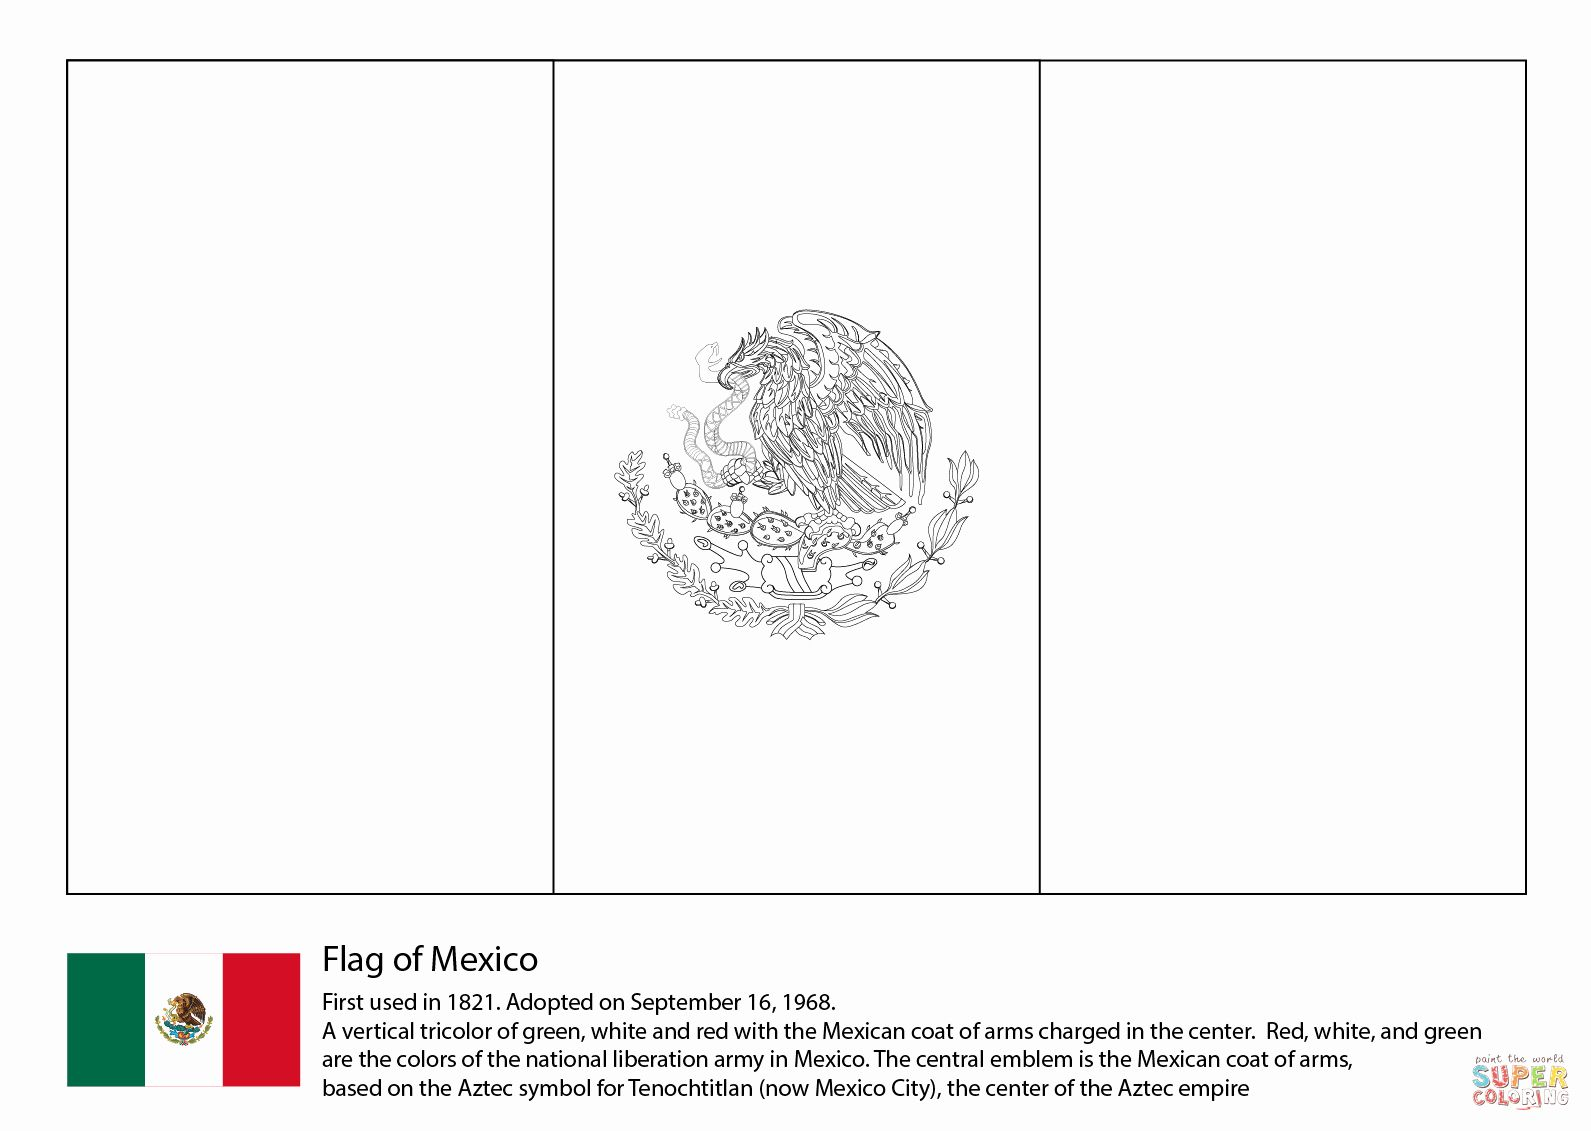 Mexico Flag Coloring Sheet Luxury Mexico Coloring Pages Printable